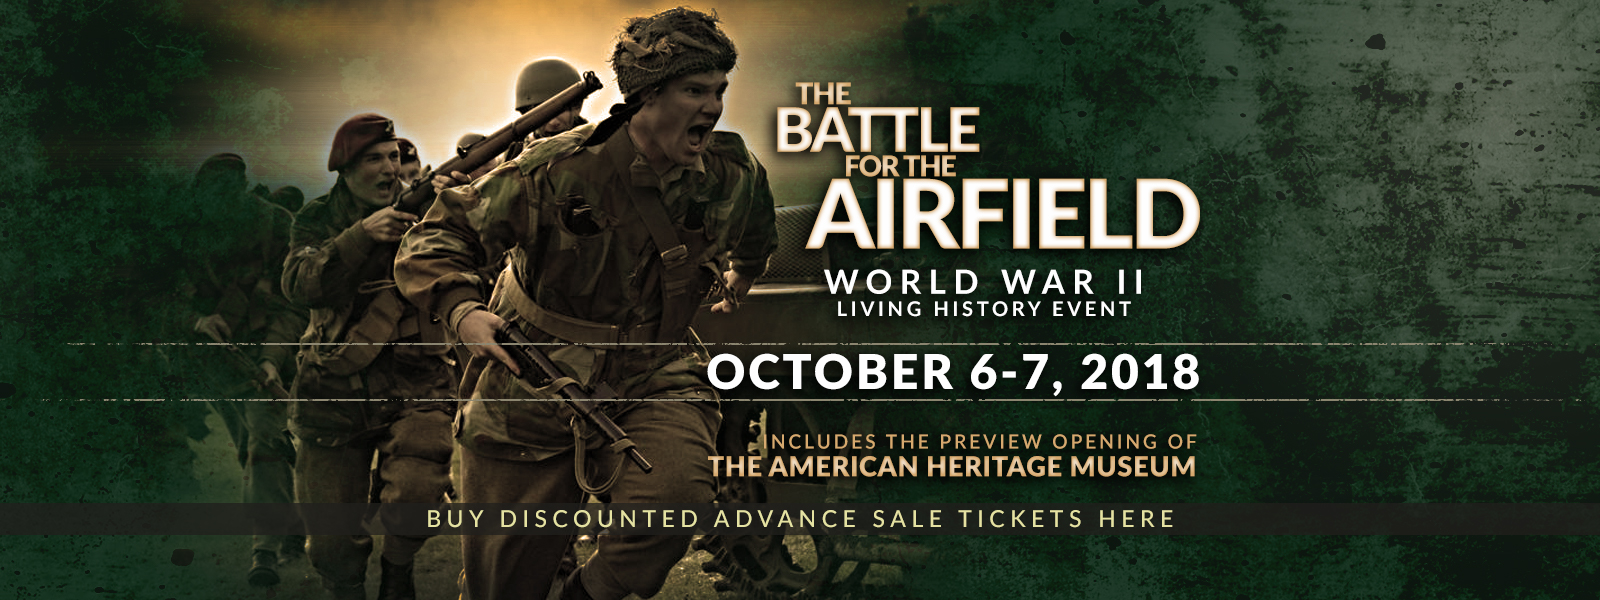 Battle for the Airfield 2018 - The American Heritage Museum